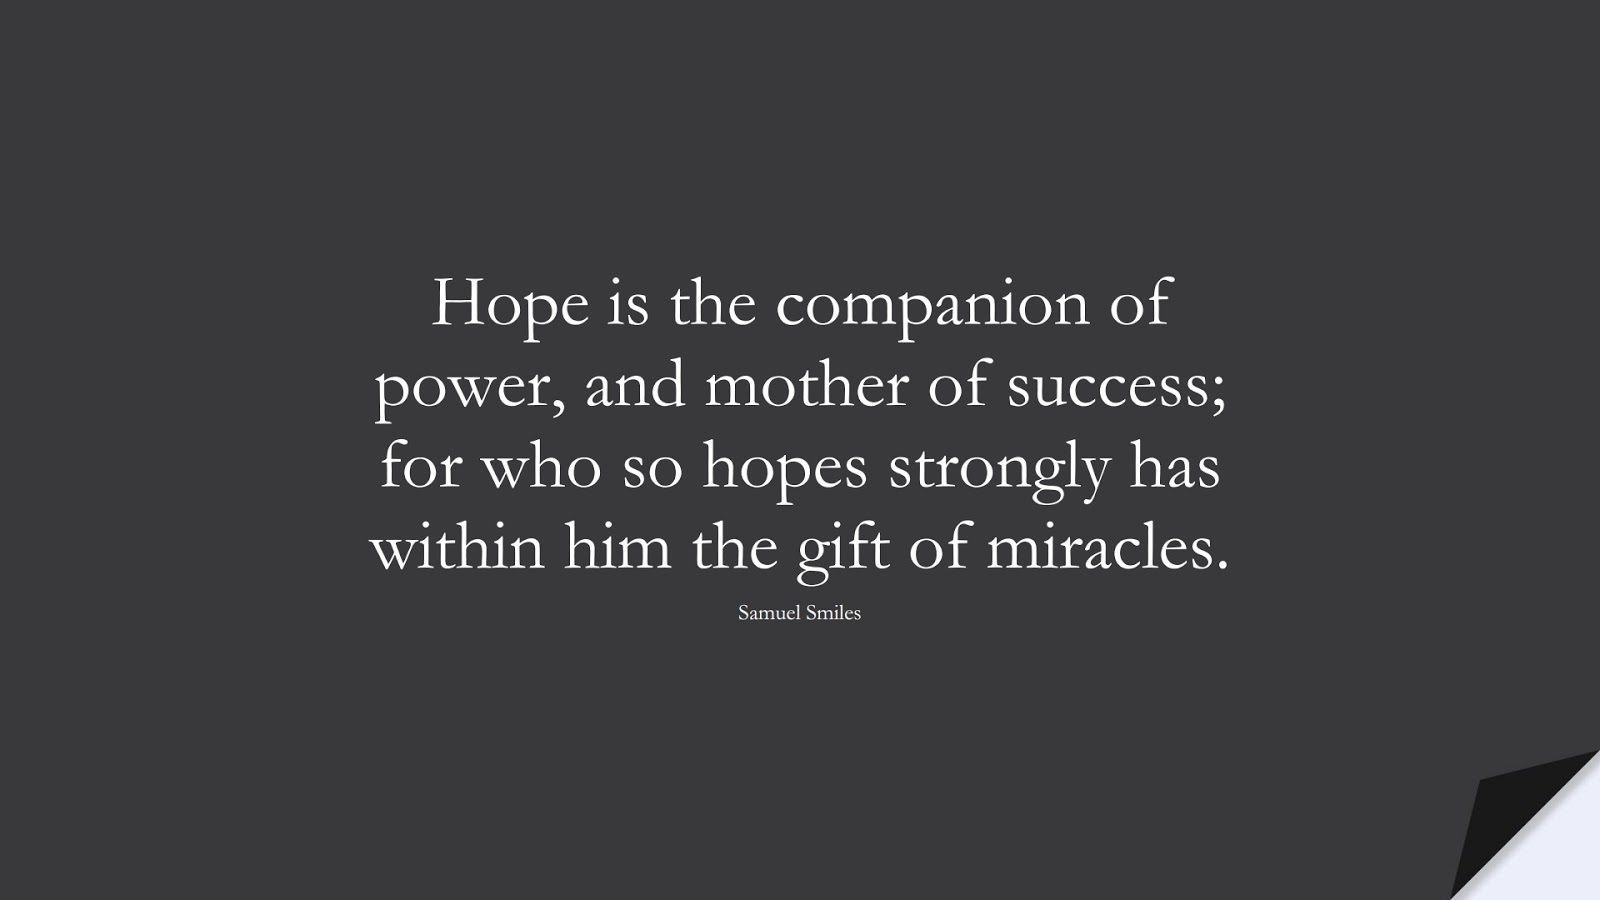 Hope is the companion of power, and mother of success; for who so hopes strongly has within him the gift of miracles. (Samuel Smiles);  #HopeQuotes